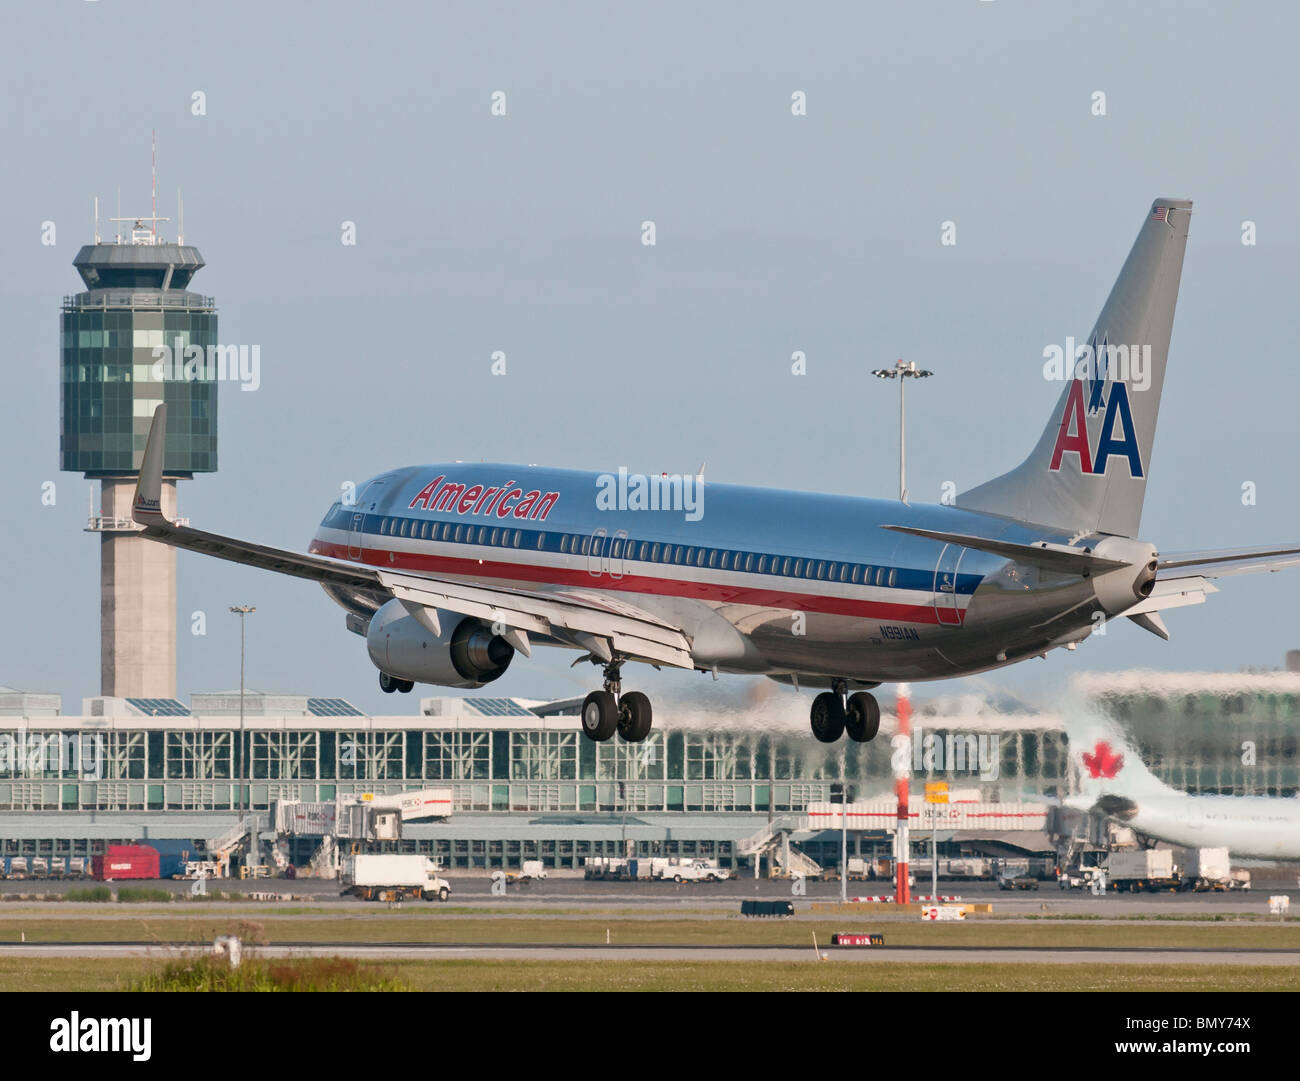 American Airlines Stock Photos & American Airlines Stock